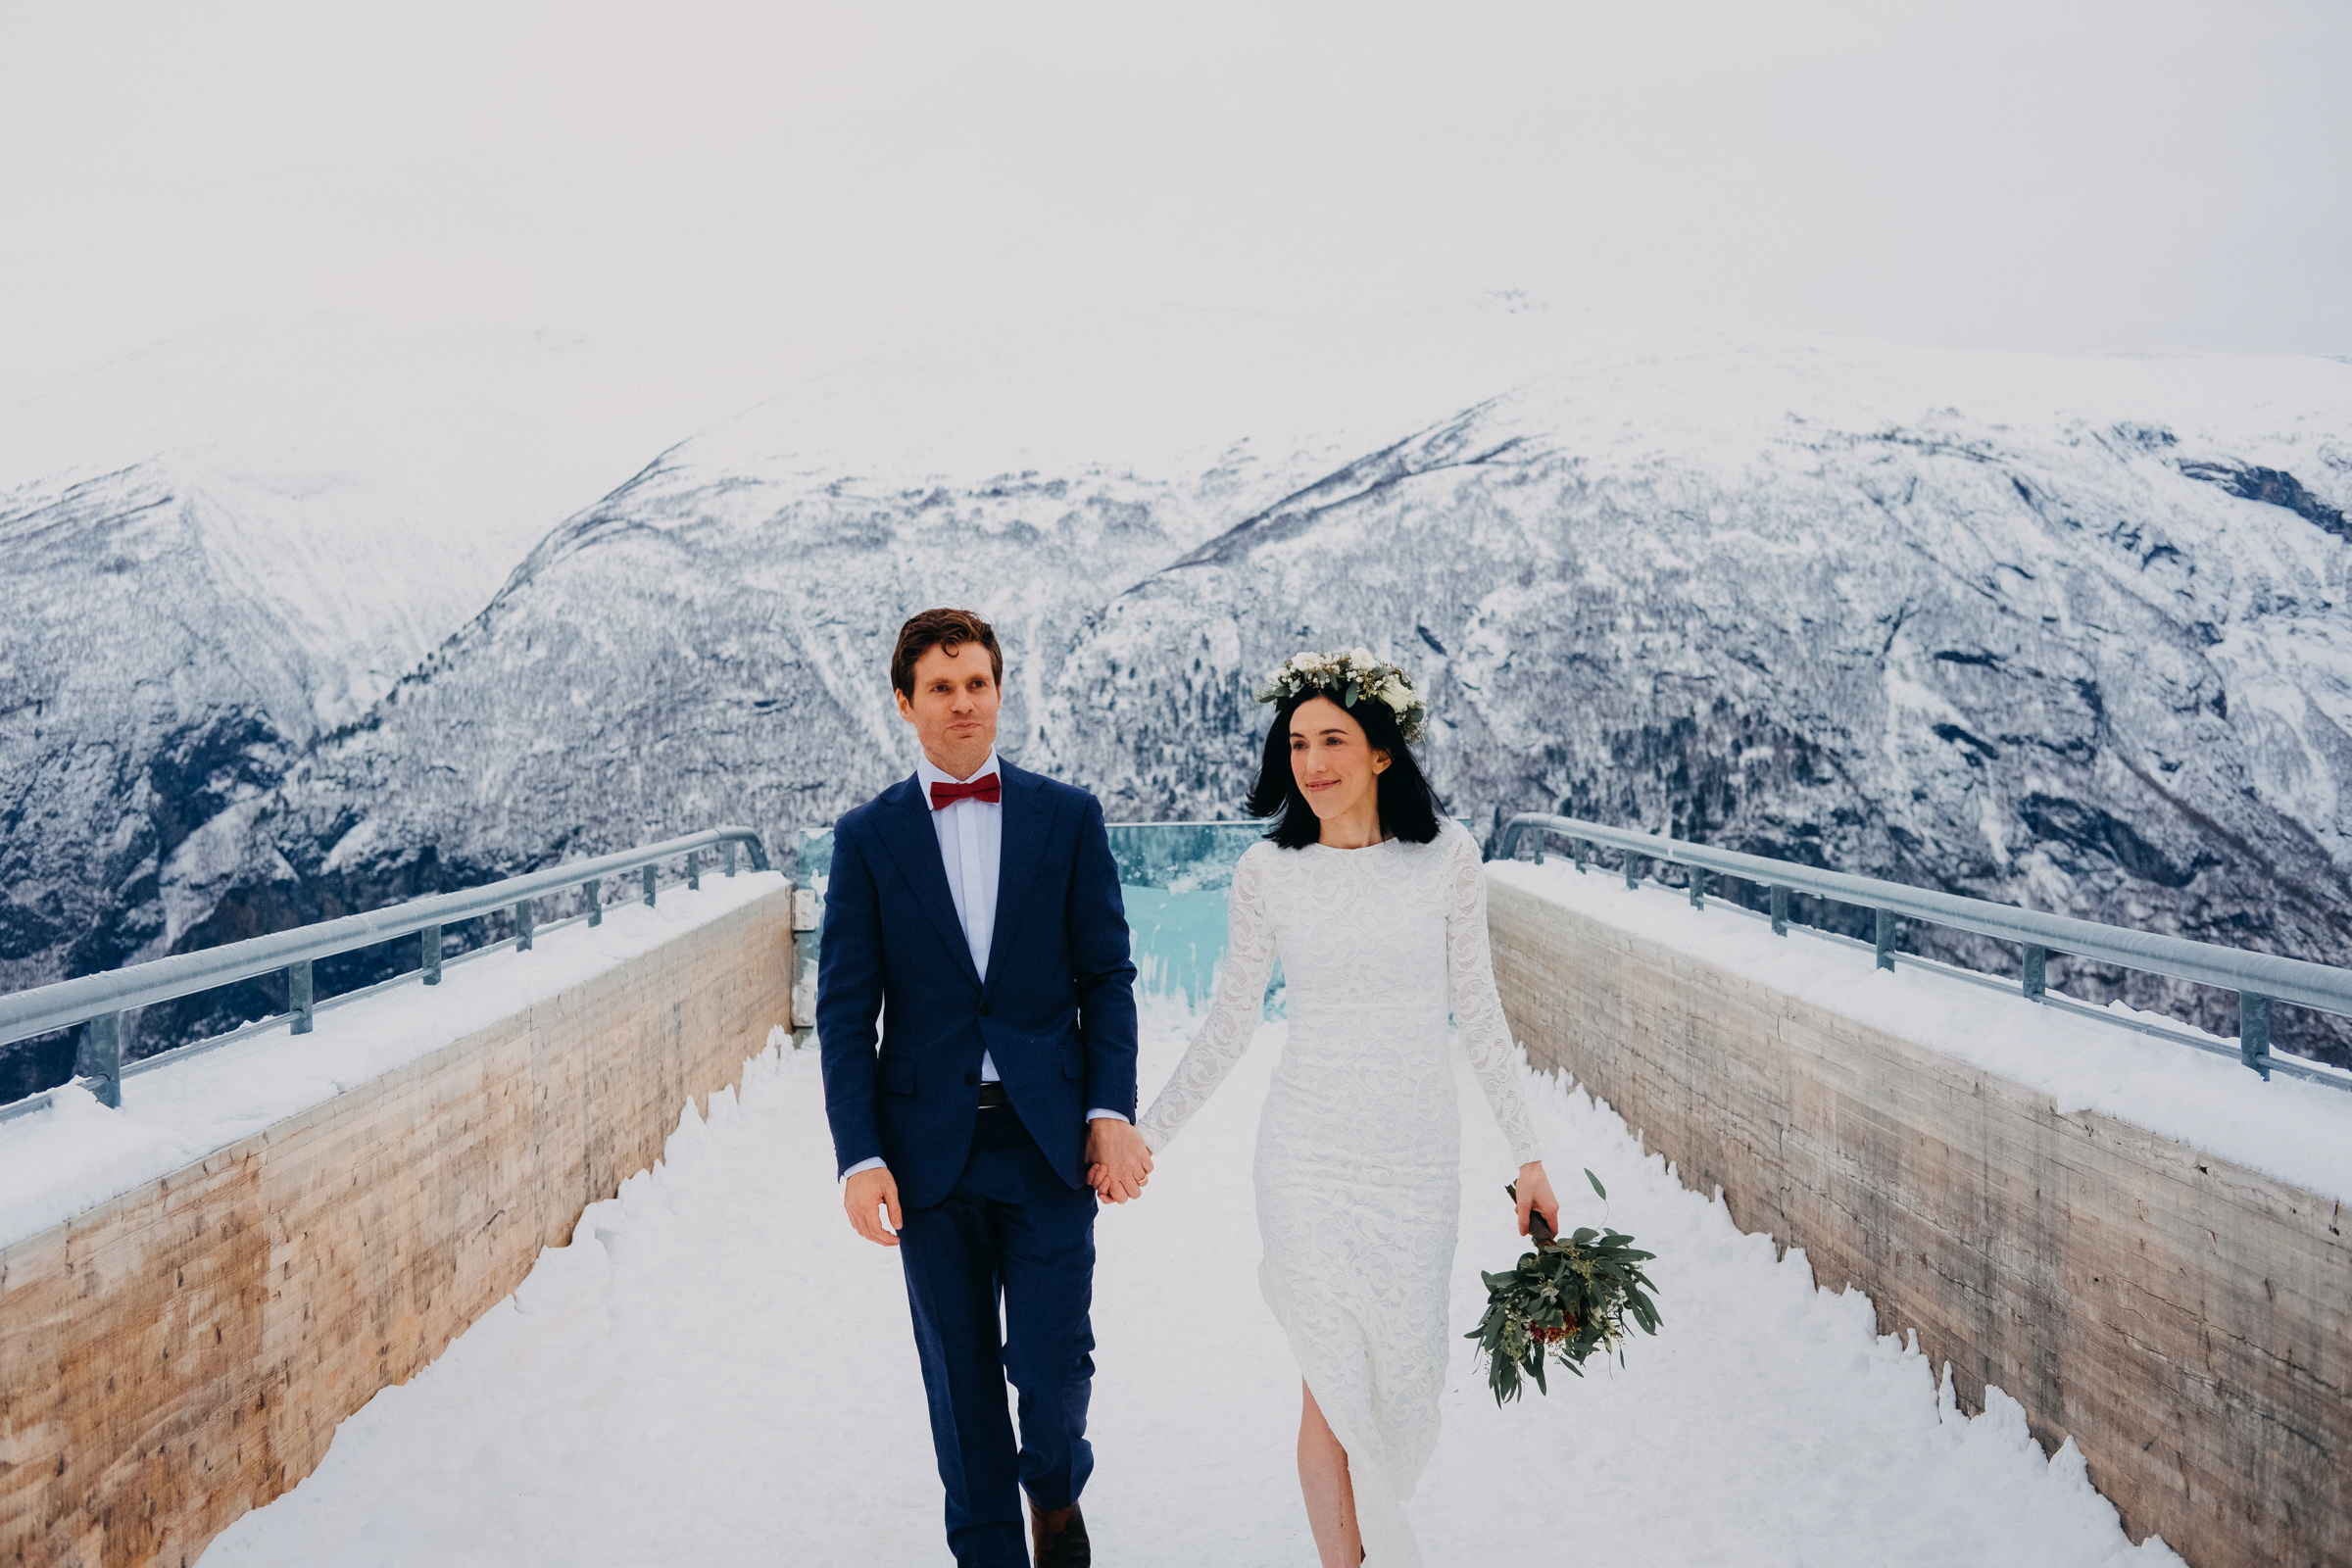 Couple walking on bridge against snowy mountains Aurland Norway - photo by Christin Eide Photography